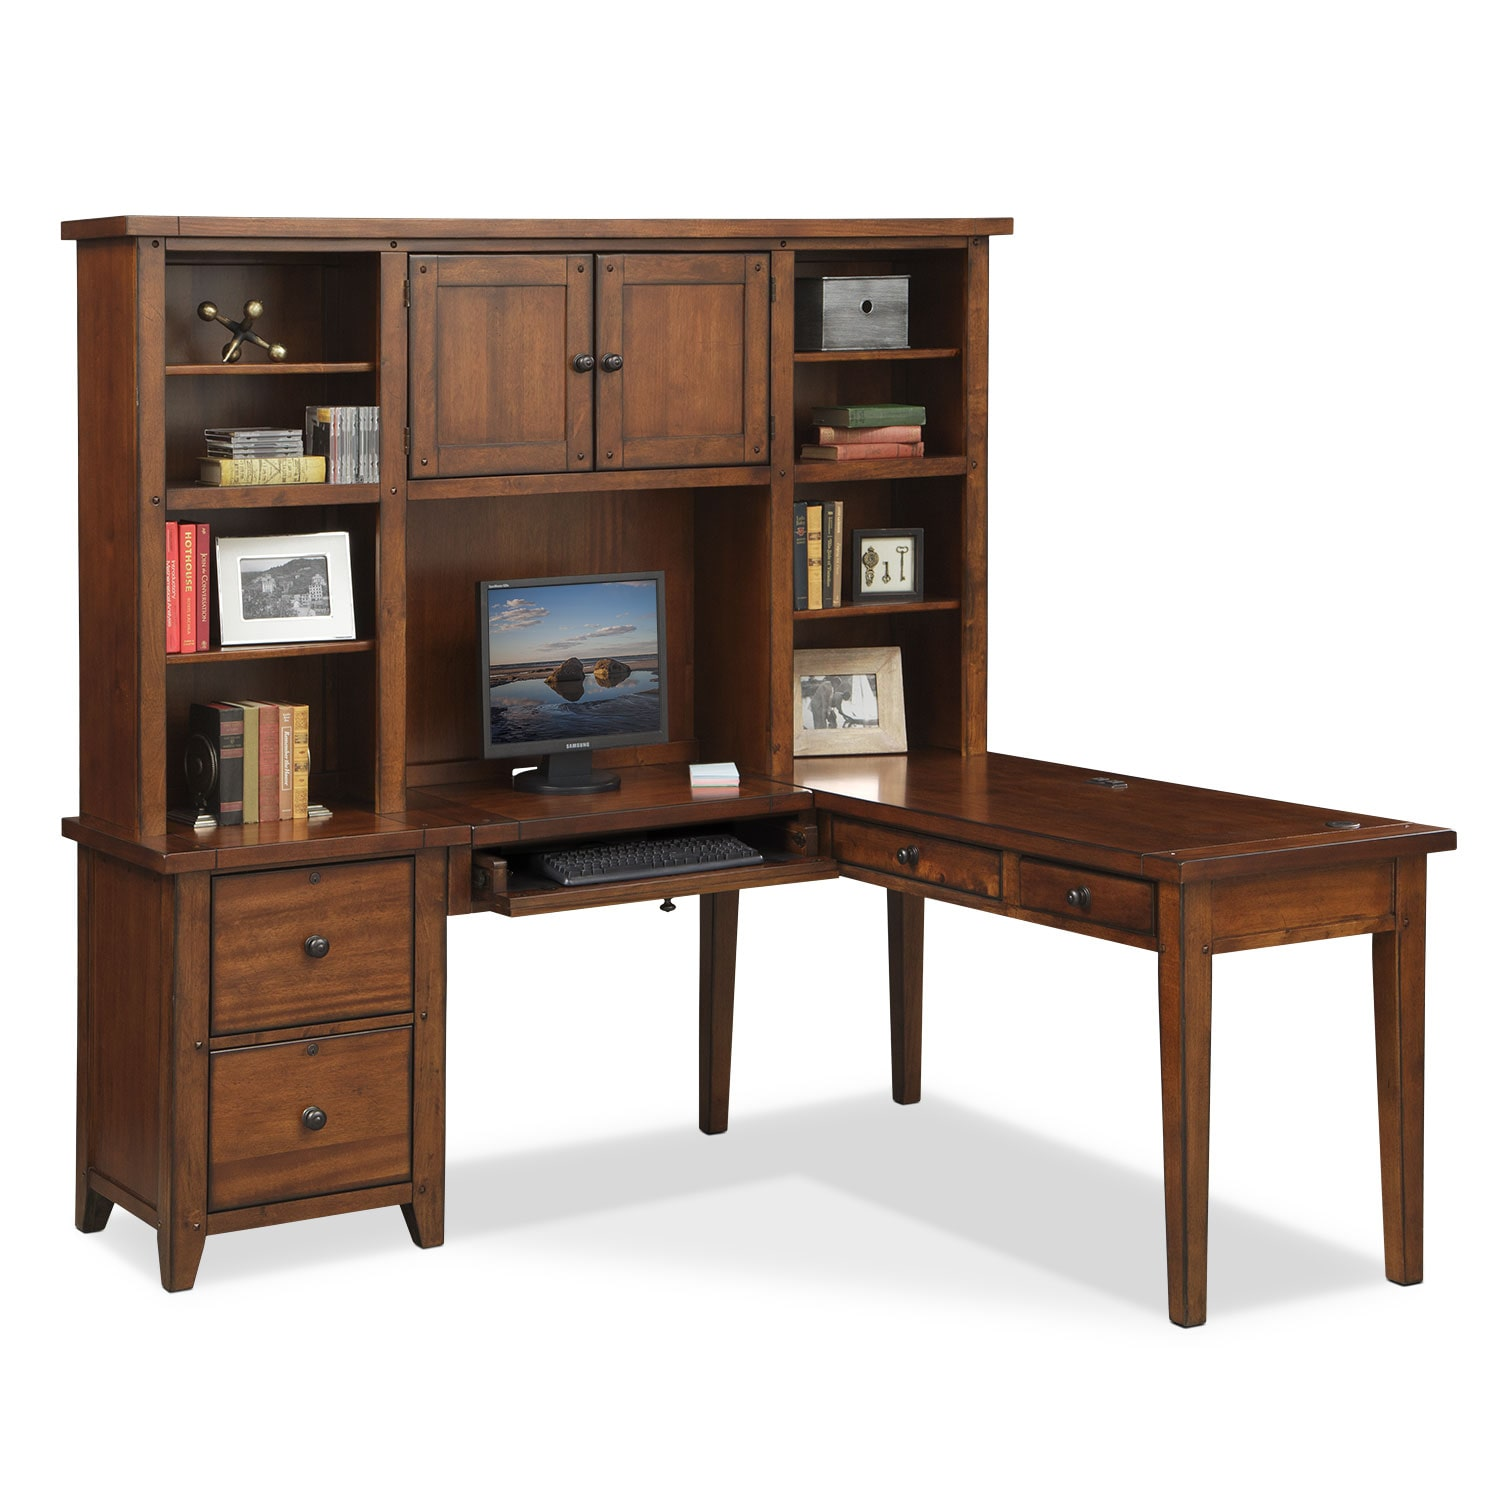 Morgan L-Shaped Desk with Hutch